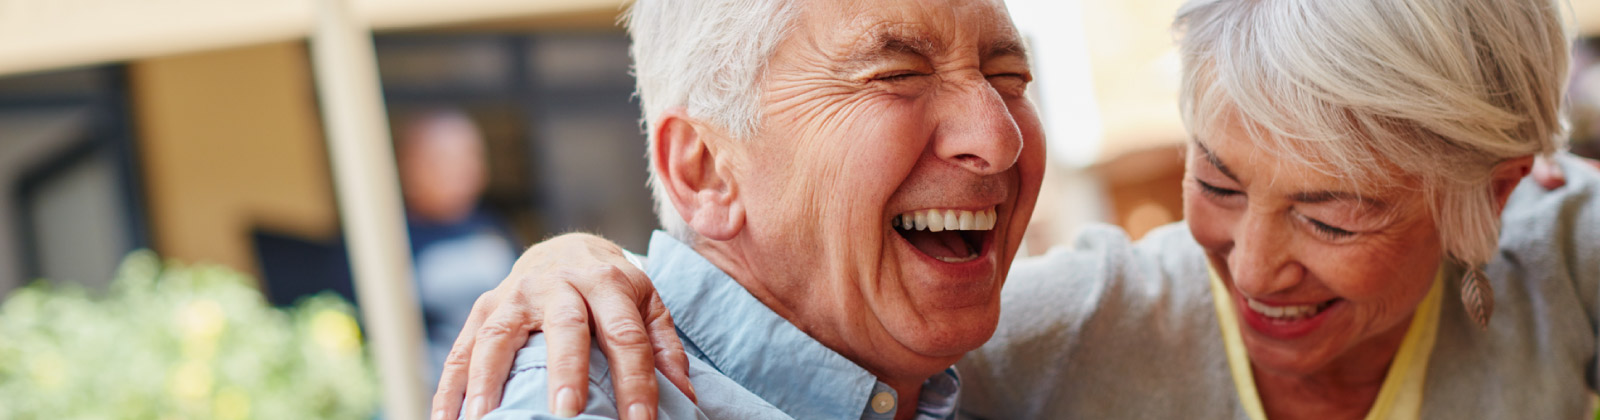 Older couple laughing together in joy.